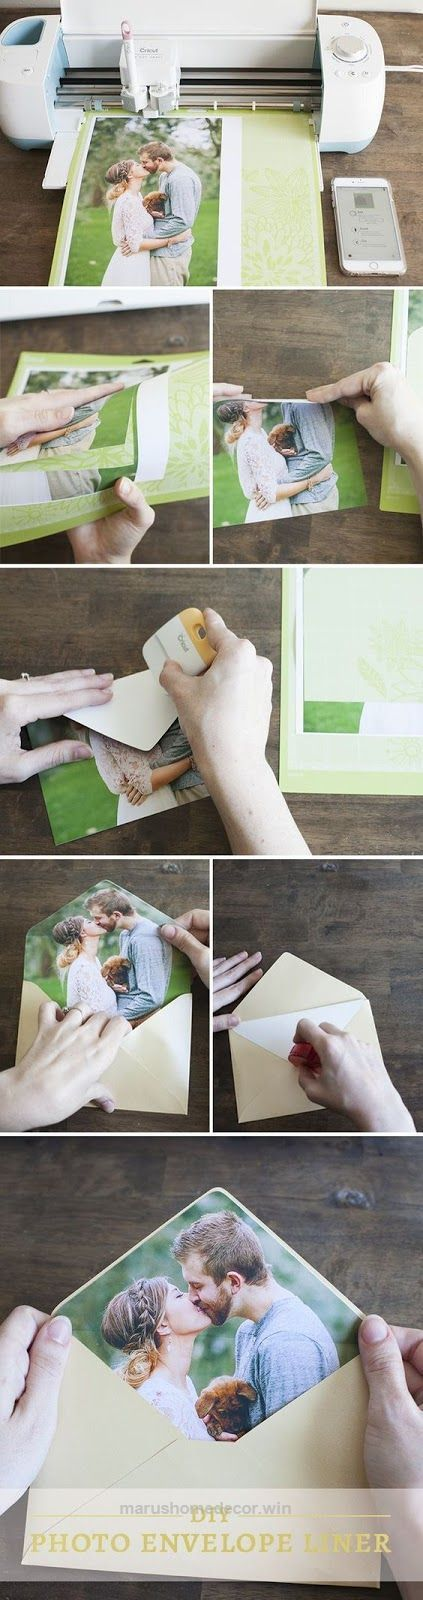 Tutorial: Photo envelope liner for wedding invitations. Made with a Cricut Explore.